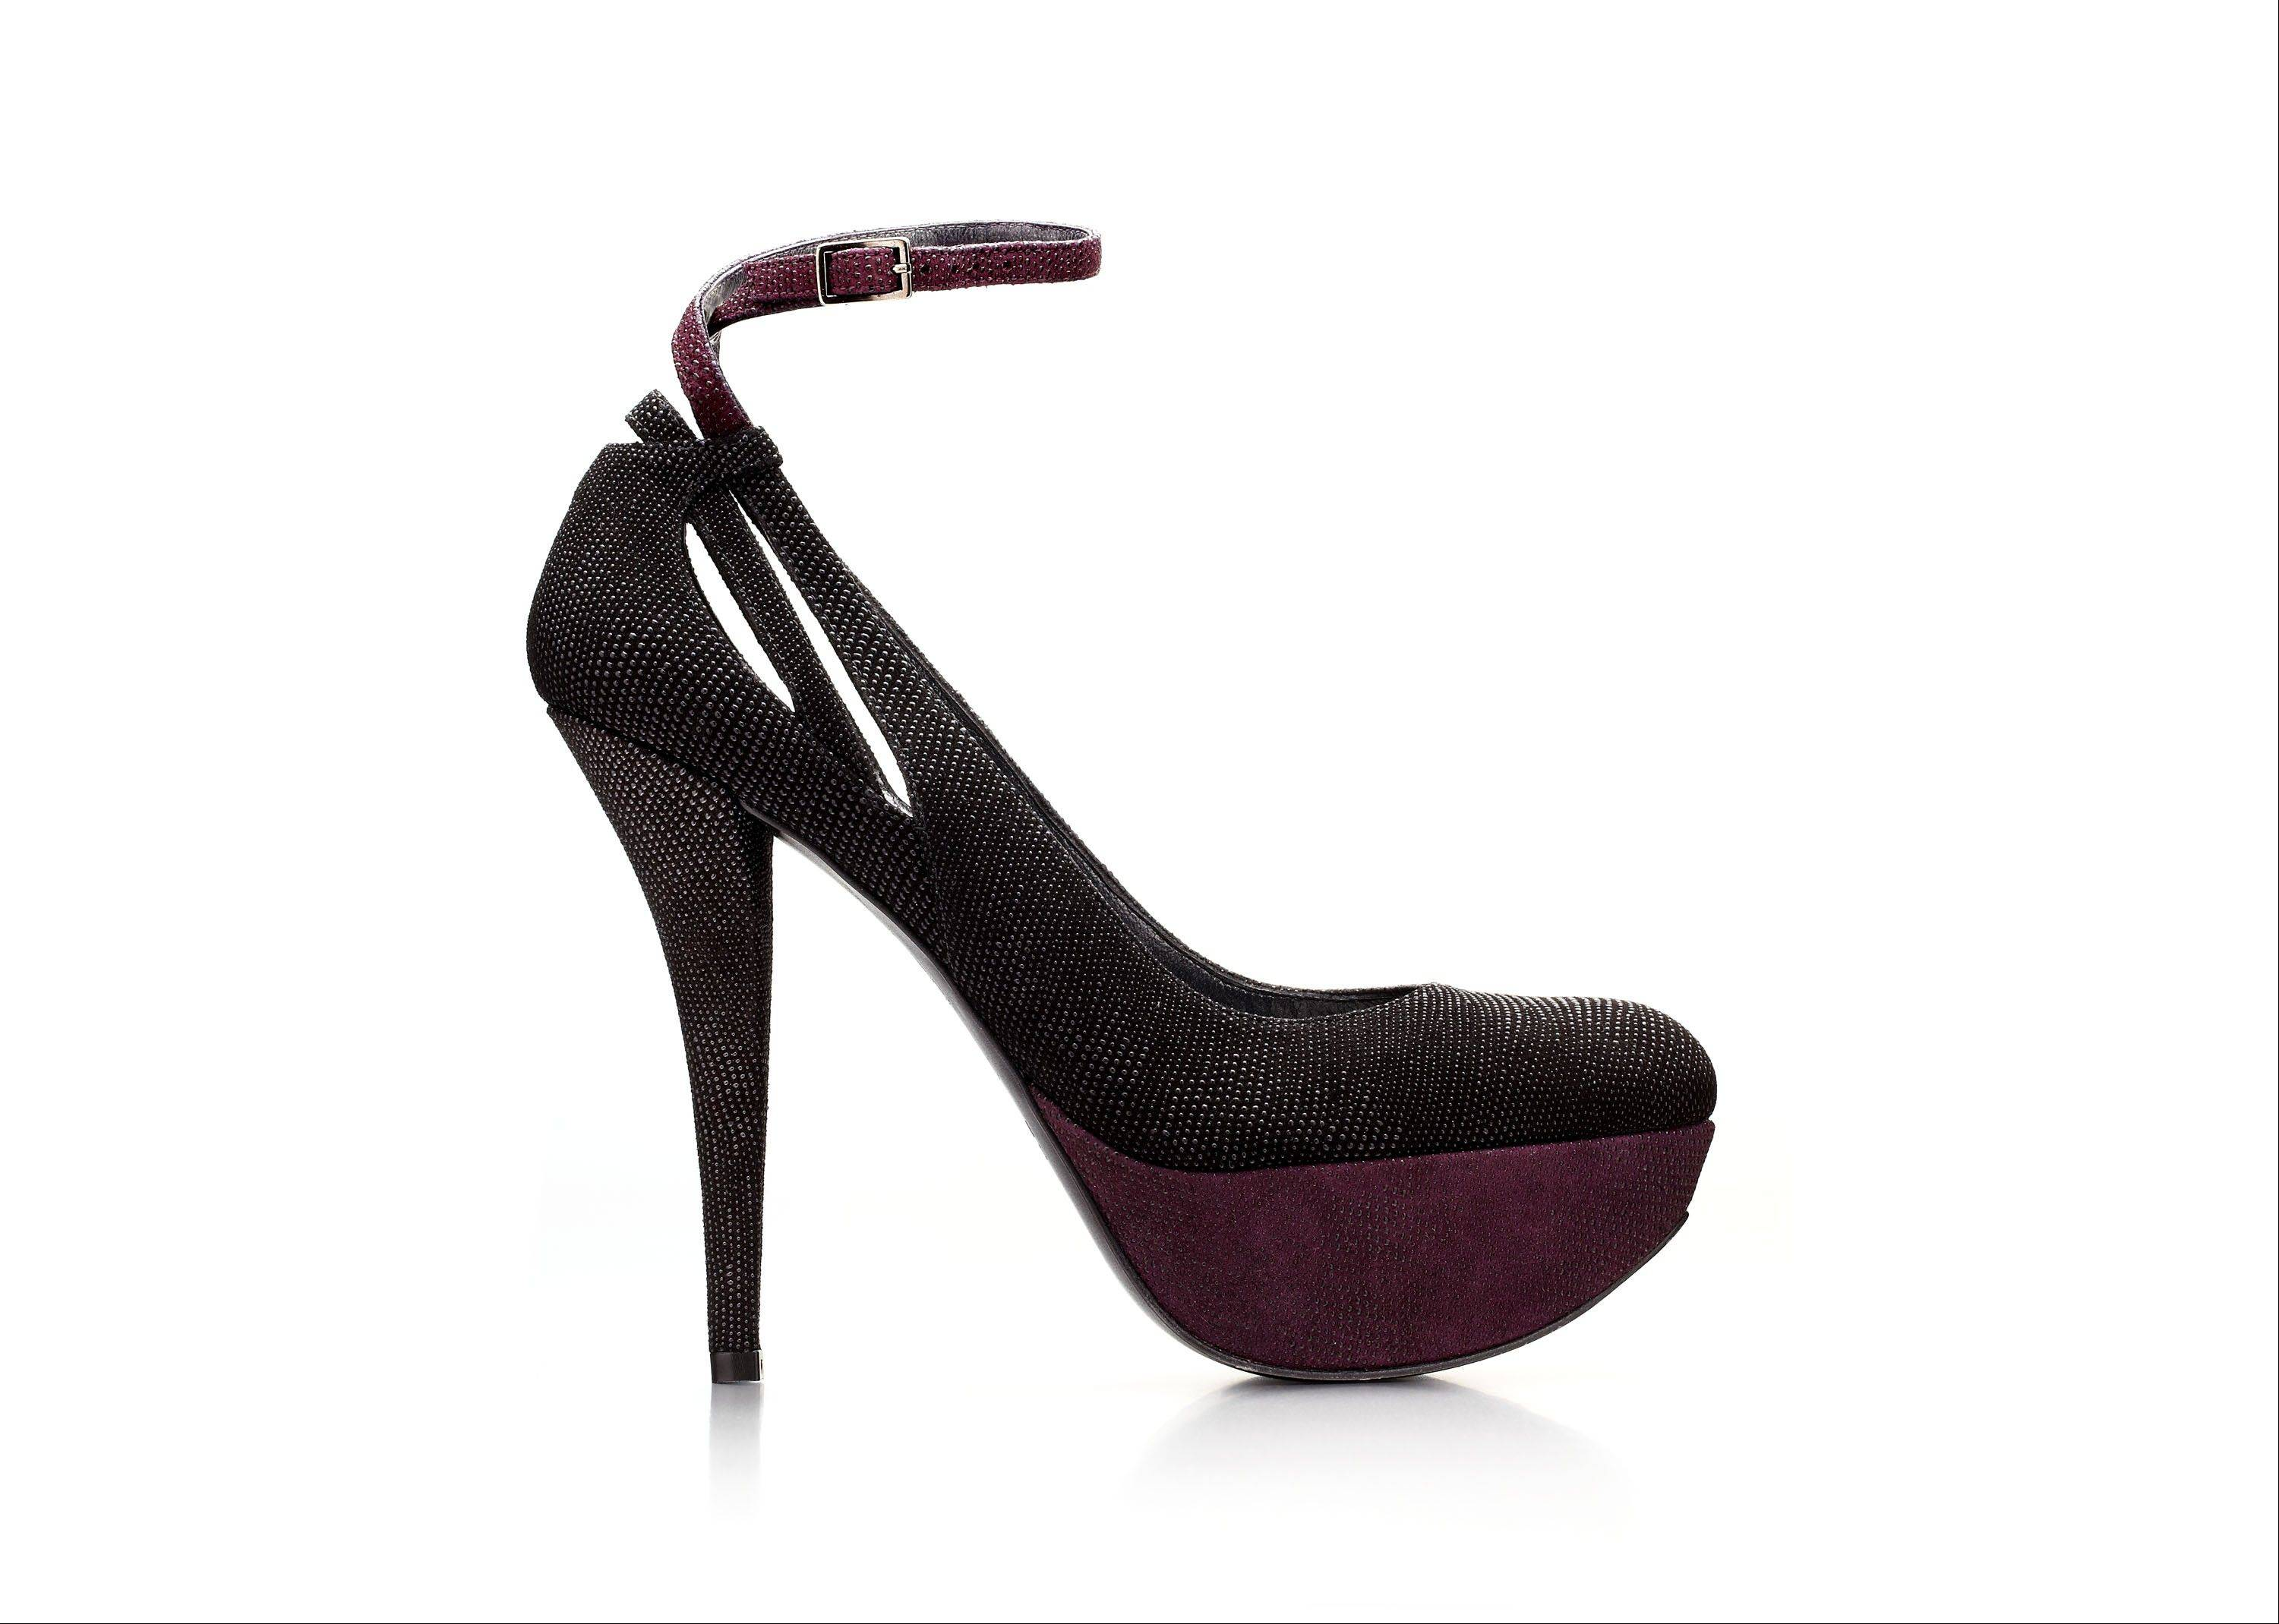 This goose-bump calfskin Stuart Weitzman pump was codesigned by actress Nikki Reed.